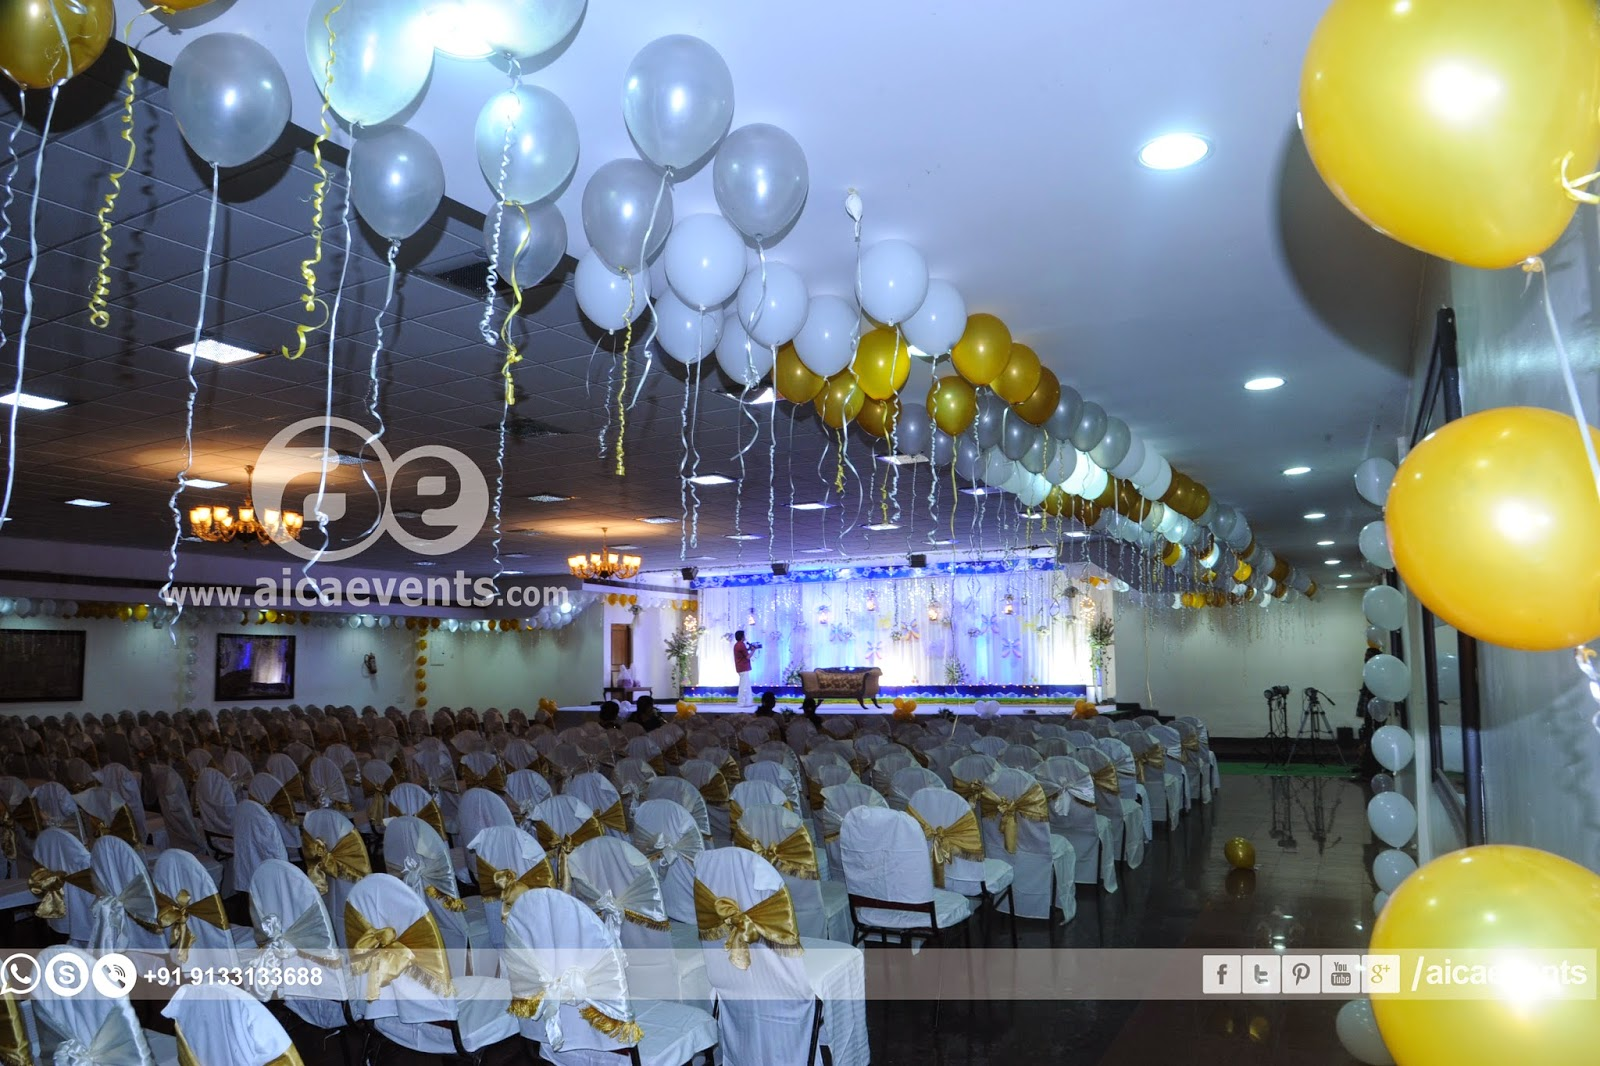 Aicaevents India Butterfly Theme Birthday Party Ideas